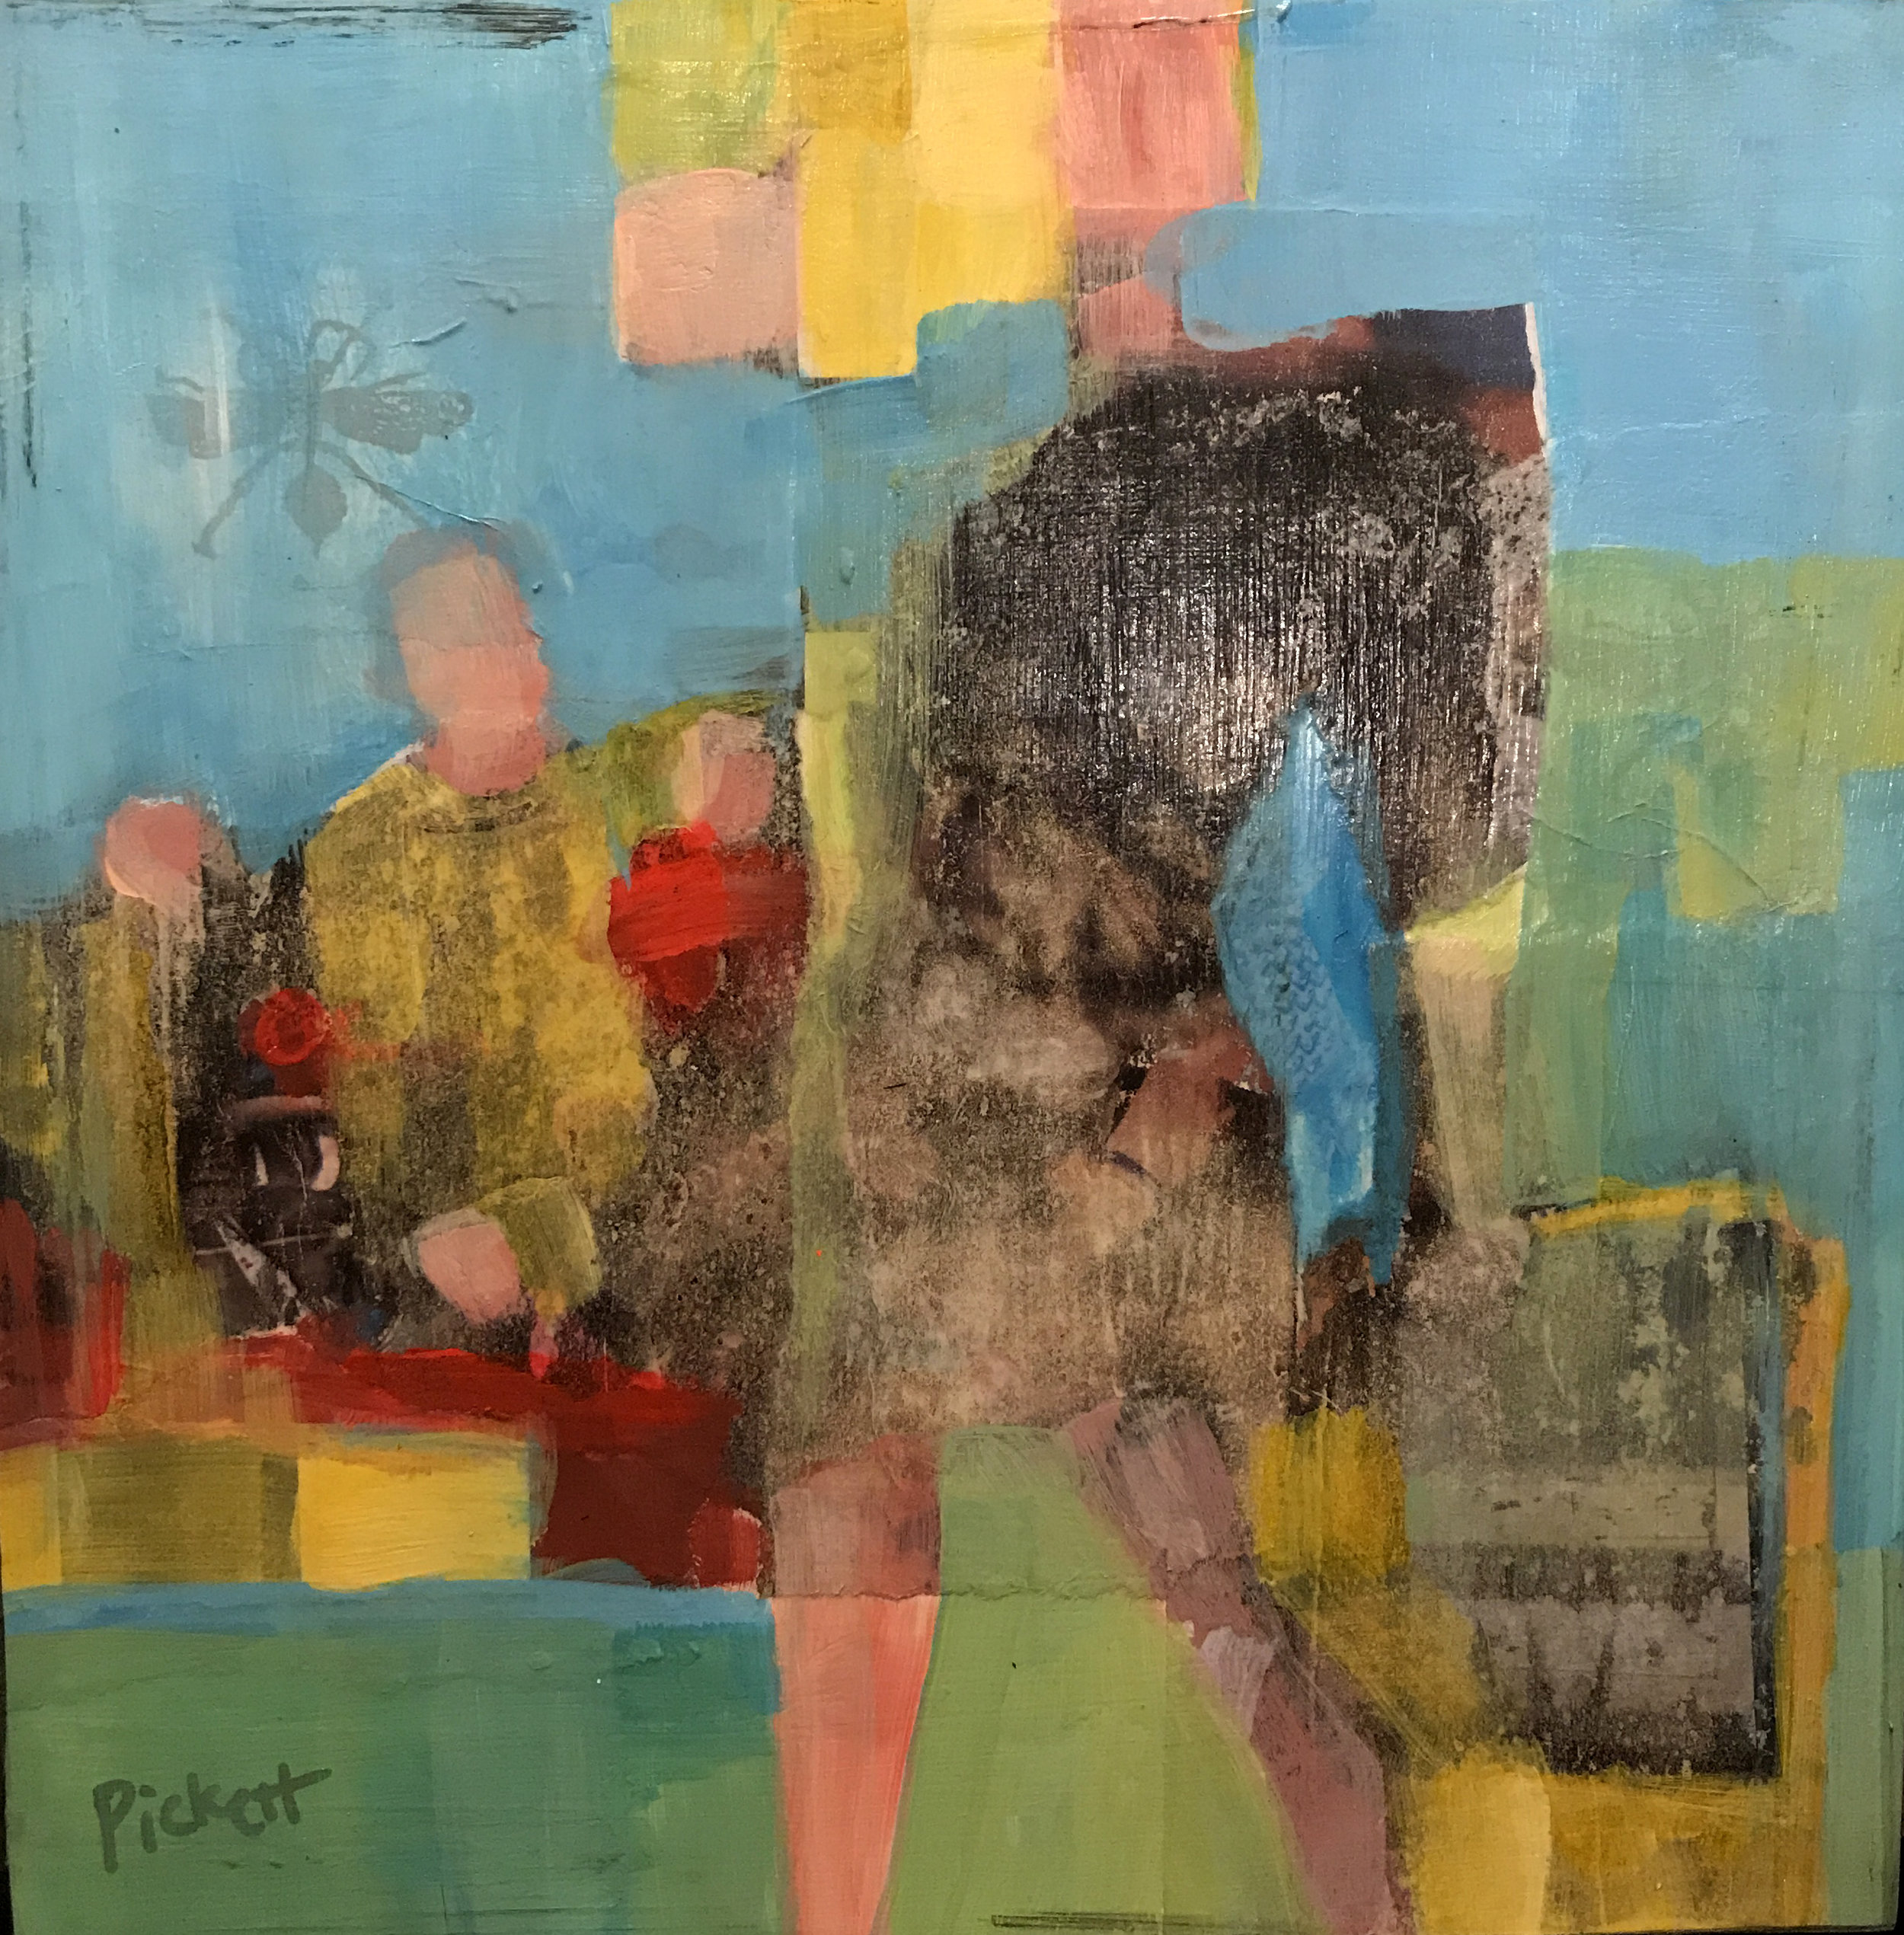 Foundry Gallery-Ann Pickett-Bottle Blonde_-8x8-Acrylic with collage-2017-$200.jpg